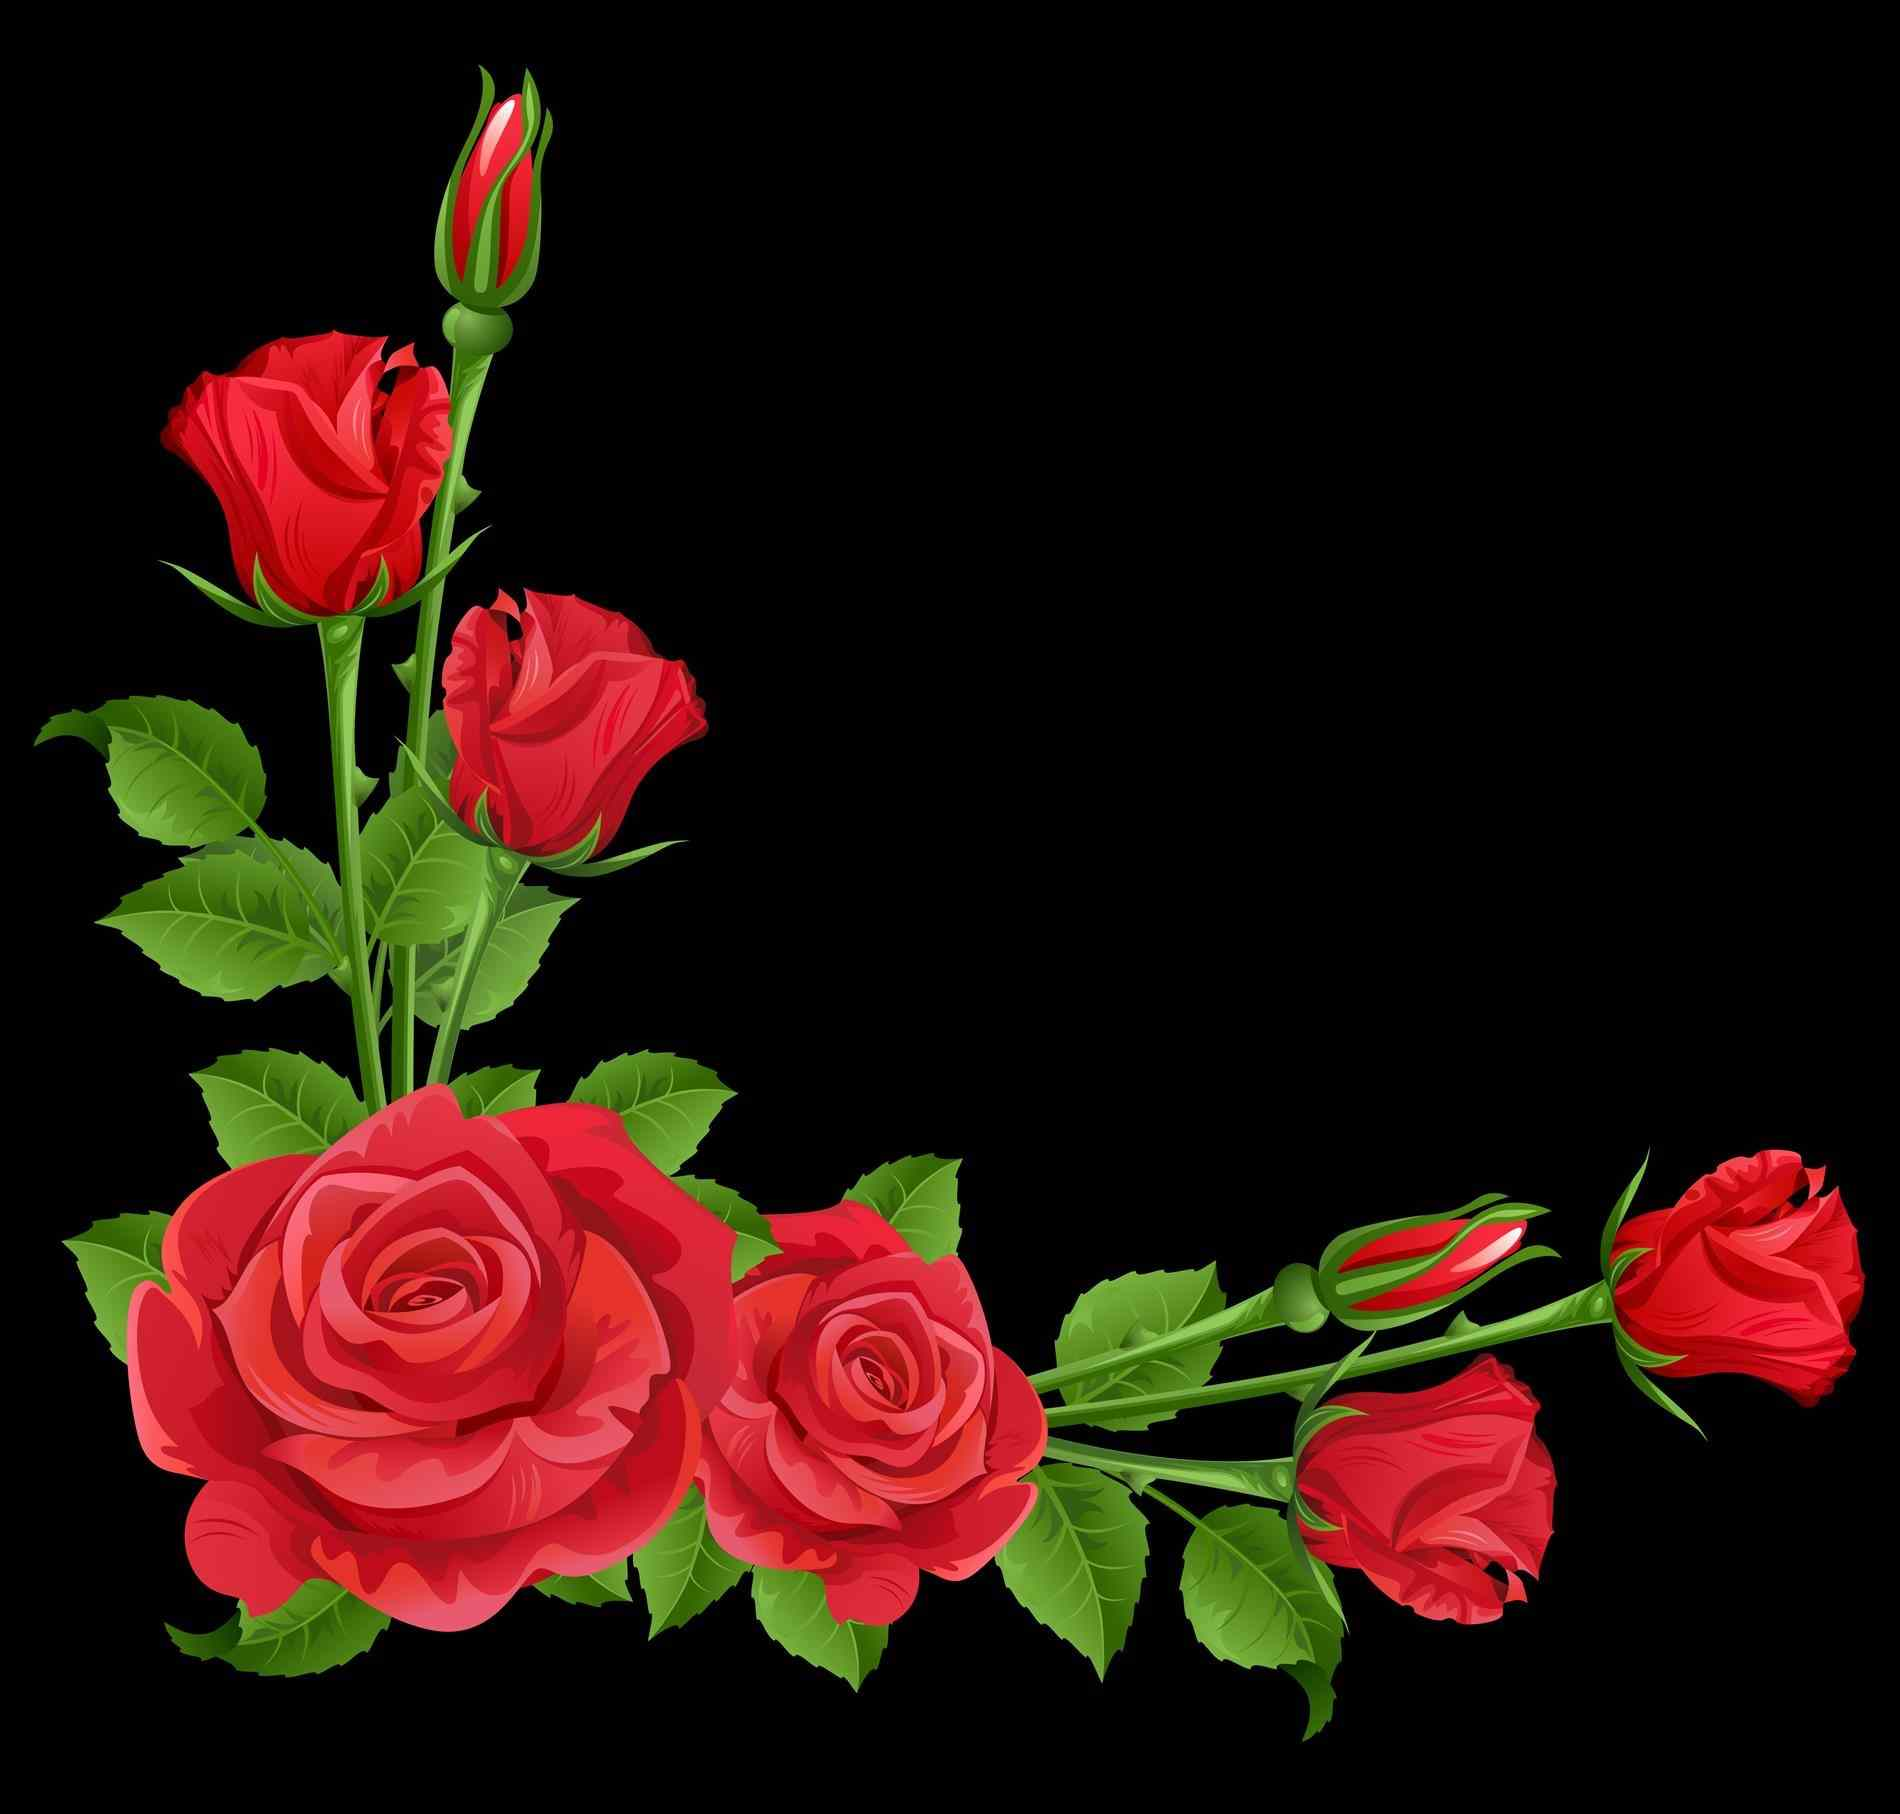 Sympathy clipart red rose. Stock photo by nobackscom